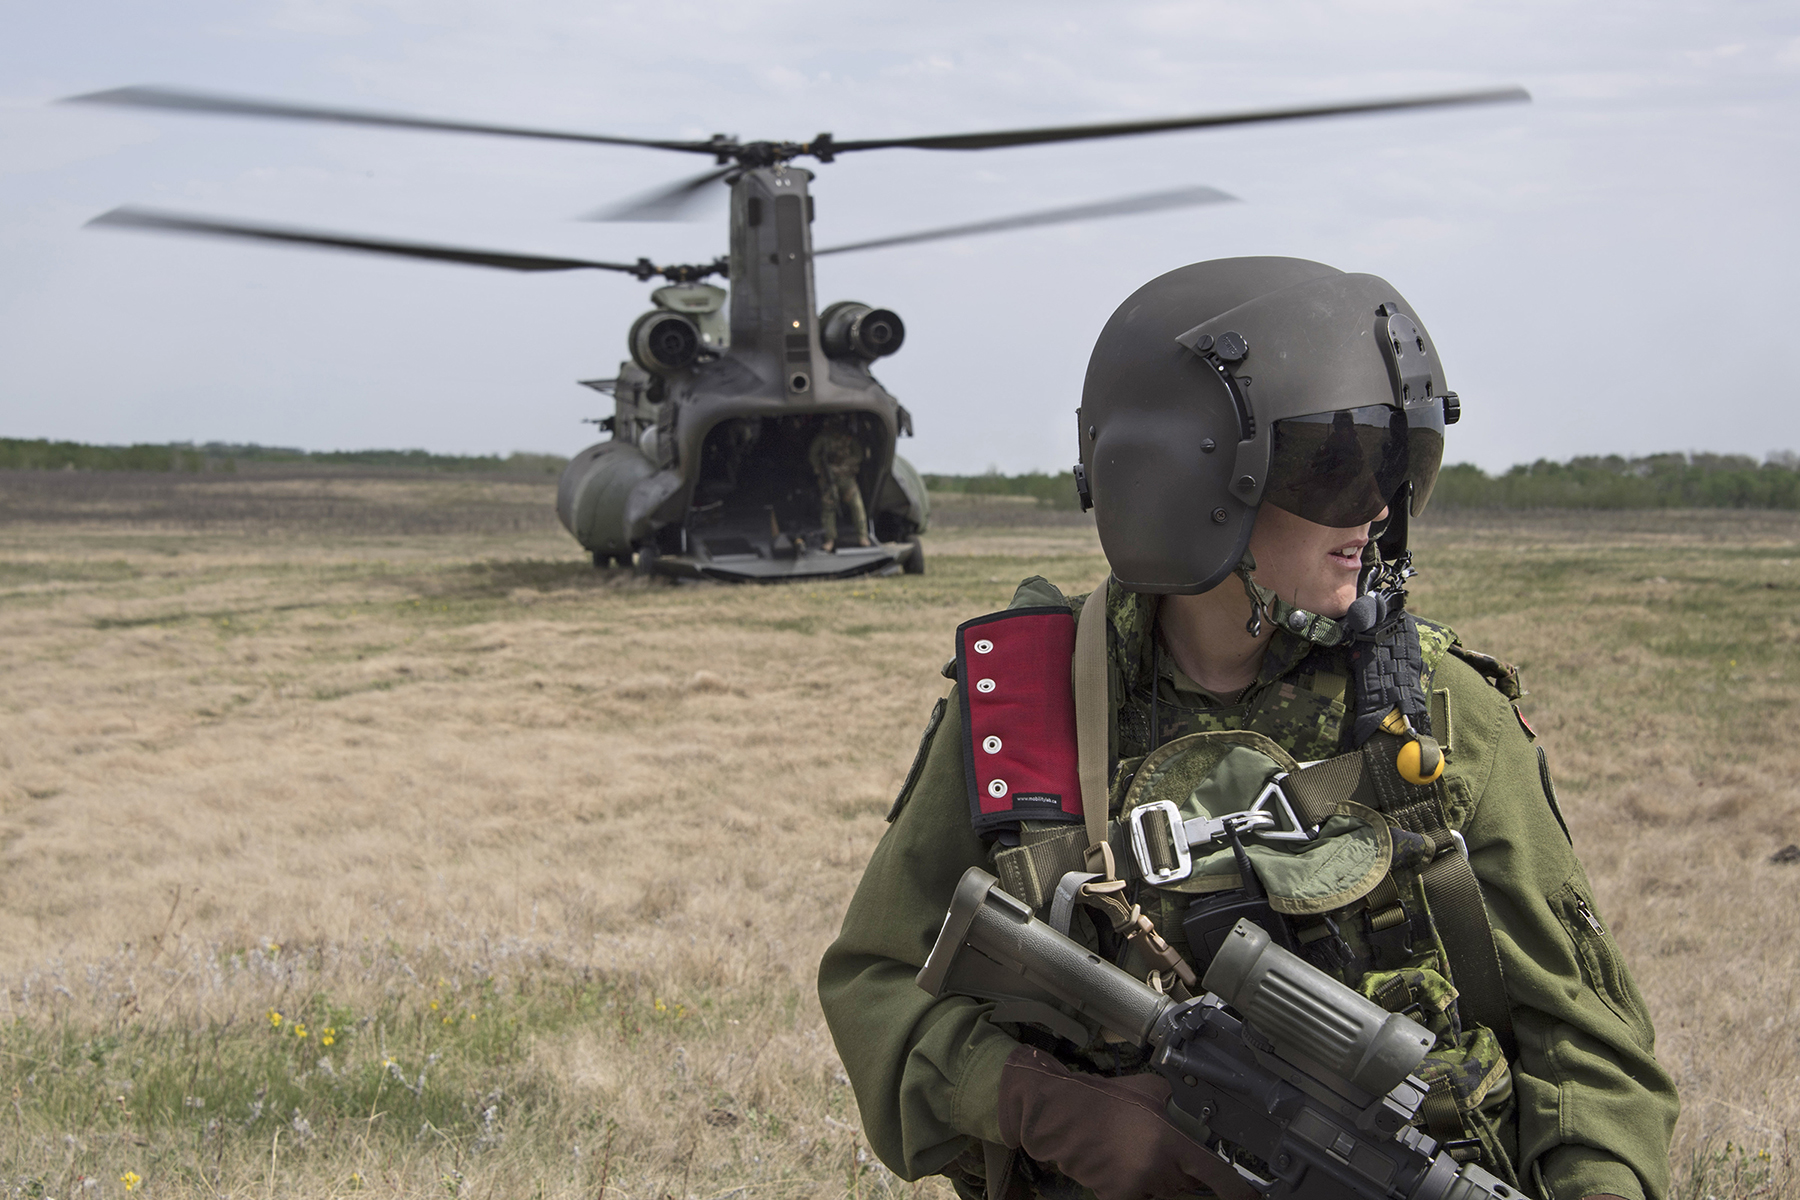 A person wearing a helmet with closed visor and a military uniform holds a rifle. In the background is a large, two-rotored helicopter.